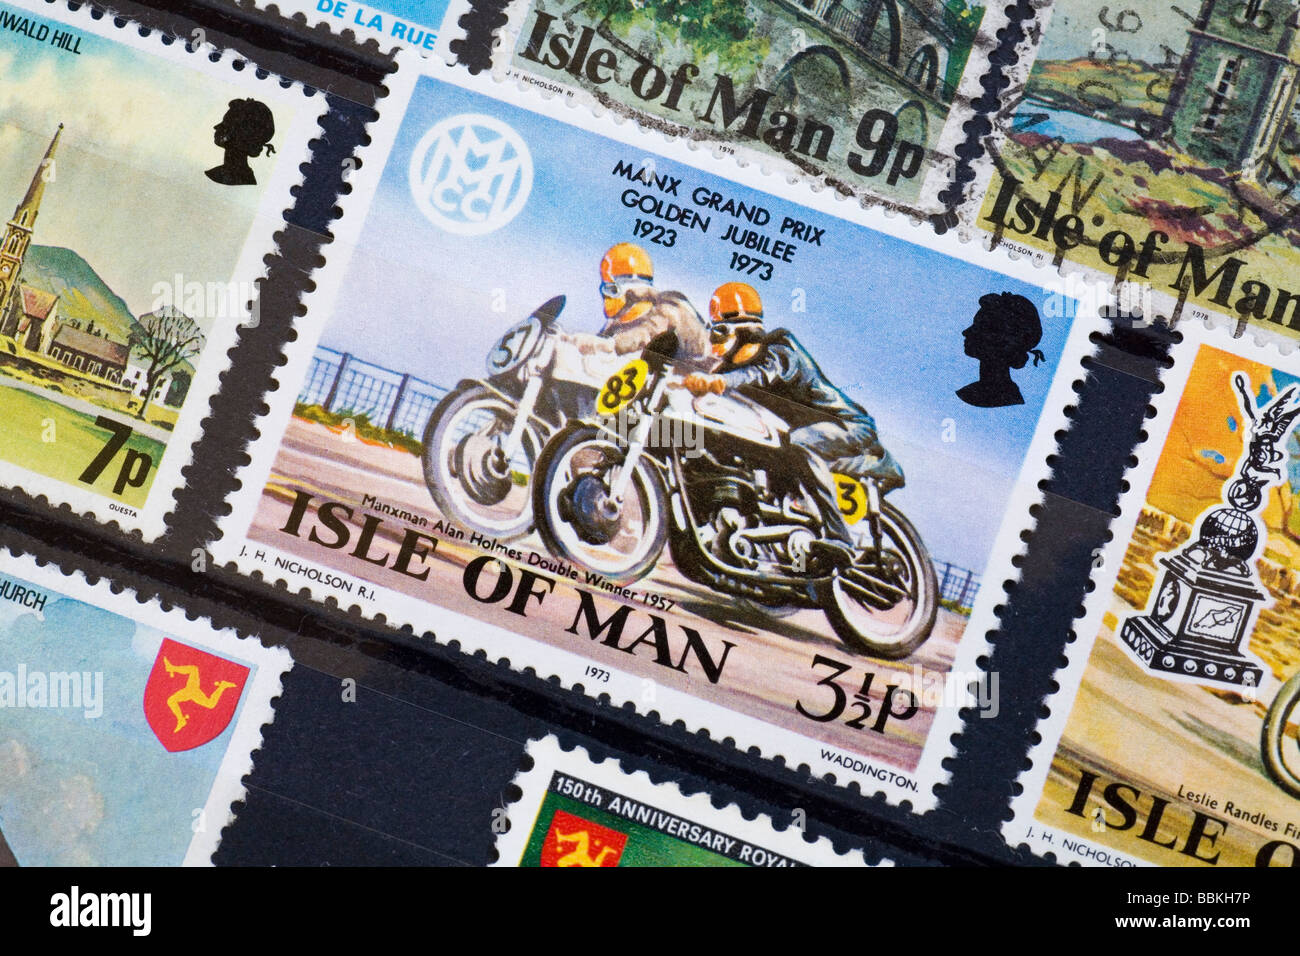 1973 Isle of Man commemorative Manx Grand Prix postage stamp in amongst other Isle of Man stamps in a stamp album - Stock Image